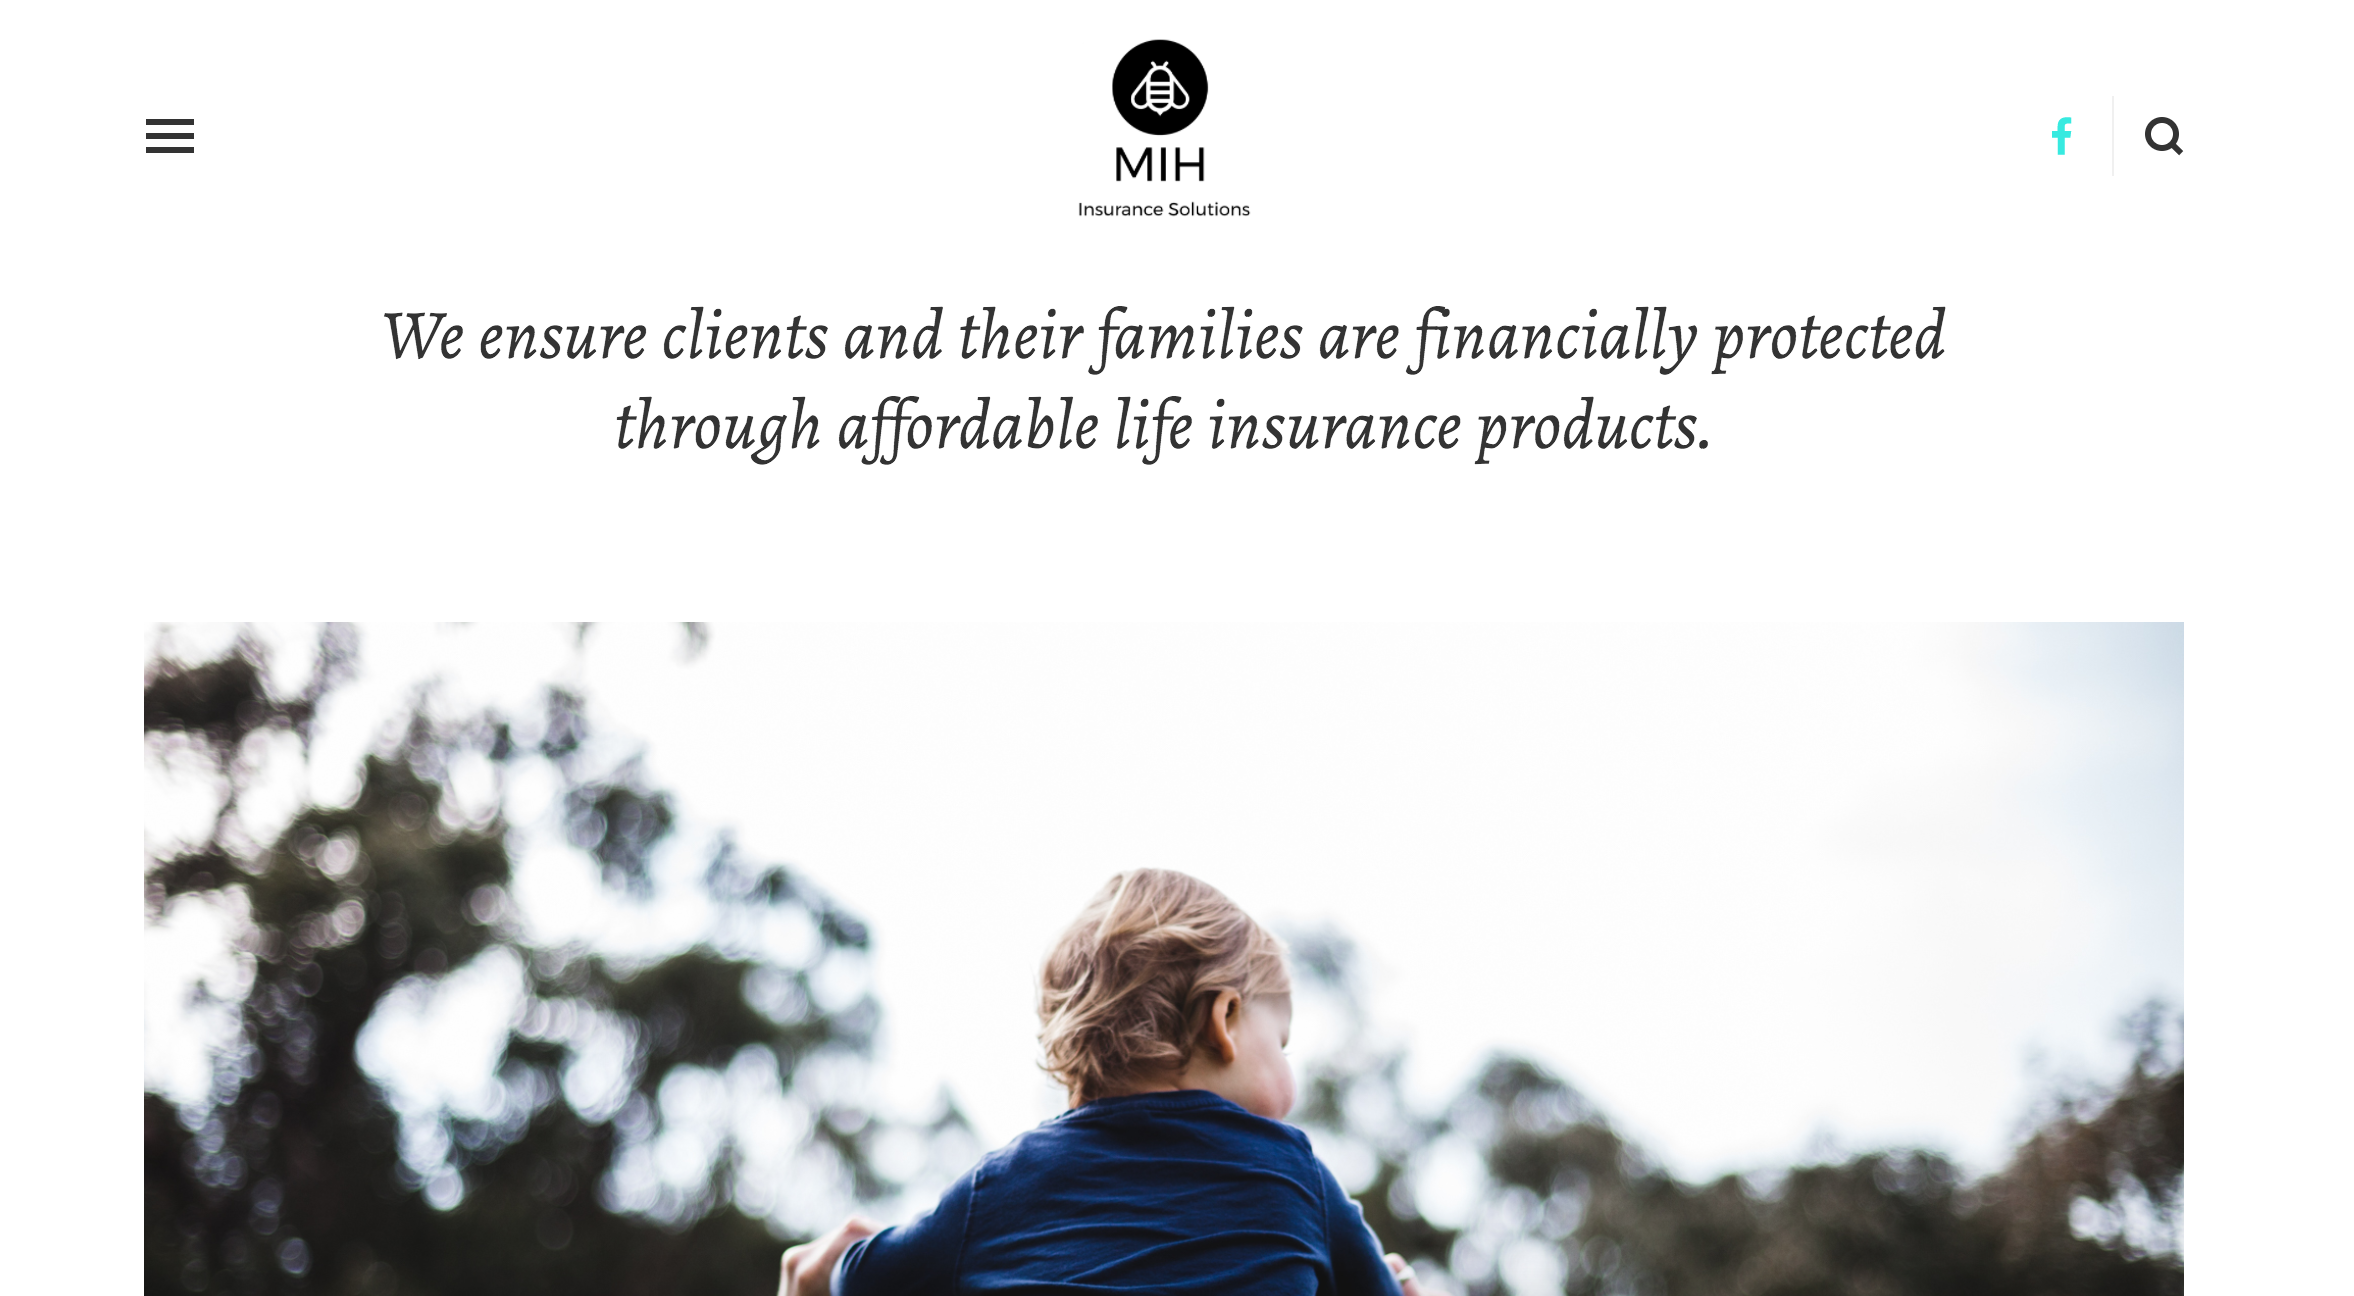 Web Design - MIH Insurance Solutions